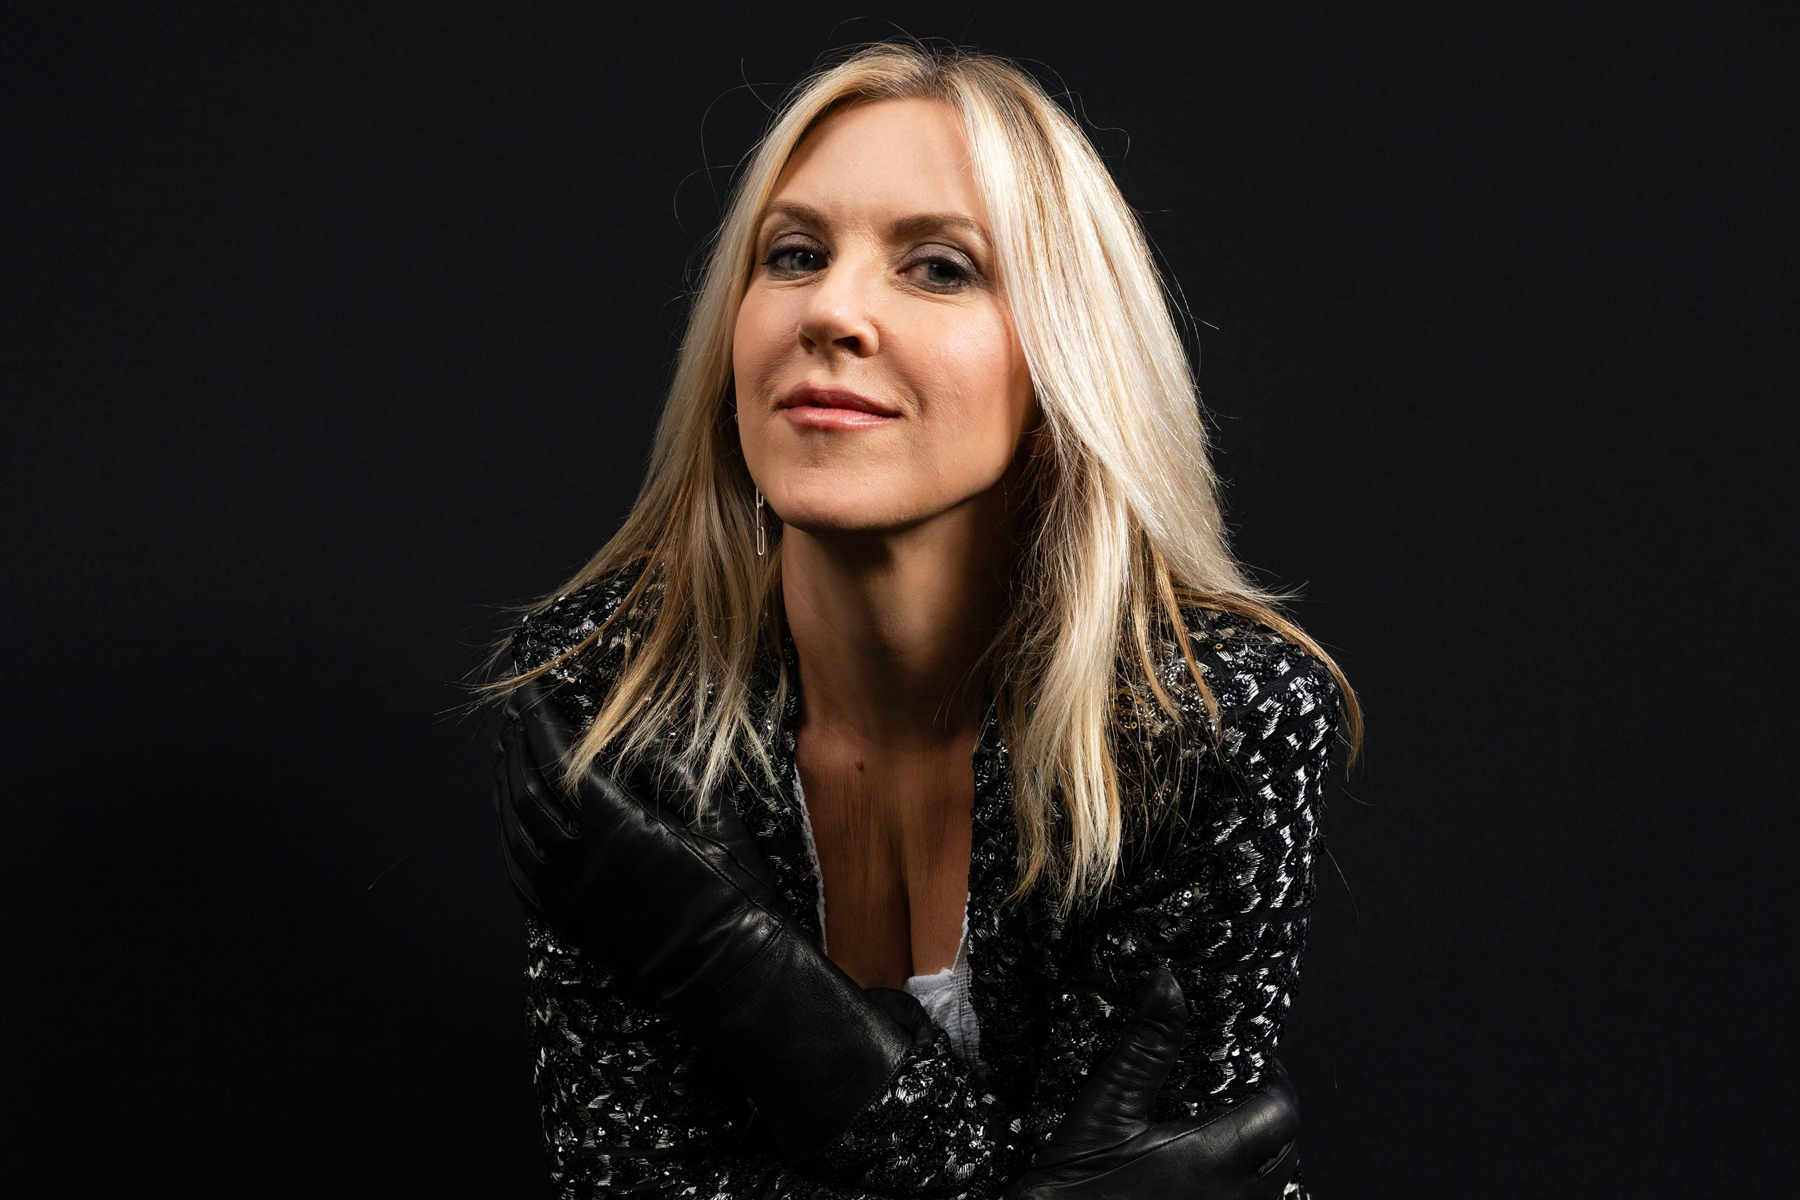 The 53-year old daughter of father (?) and mother(?) Liz Phair in 2021 photo. Liz Phair earned a  million dollar salary - leaving the net worth at  million in 2021